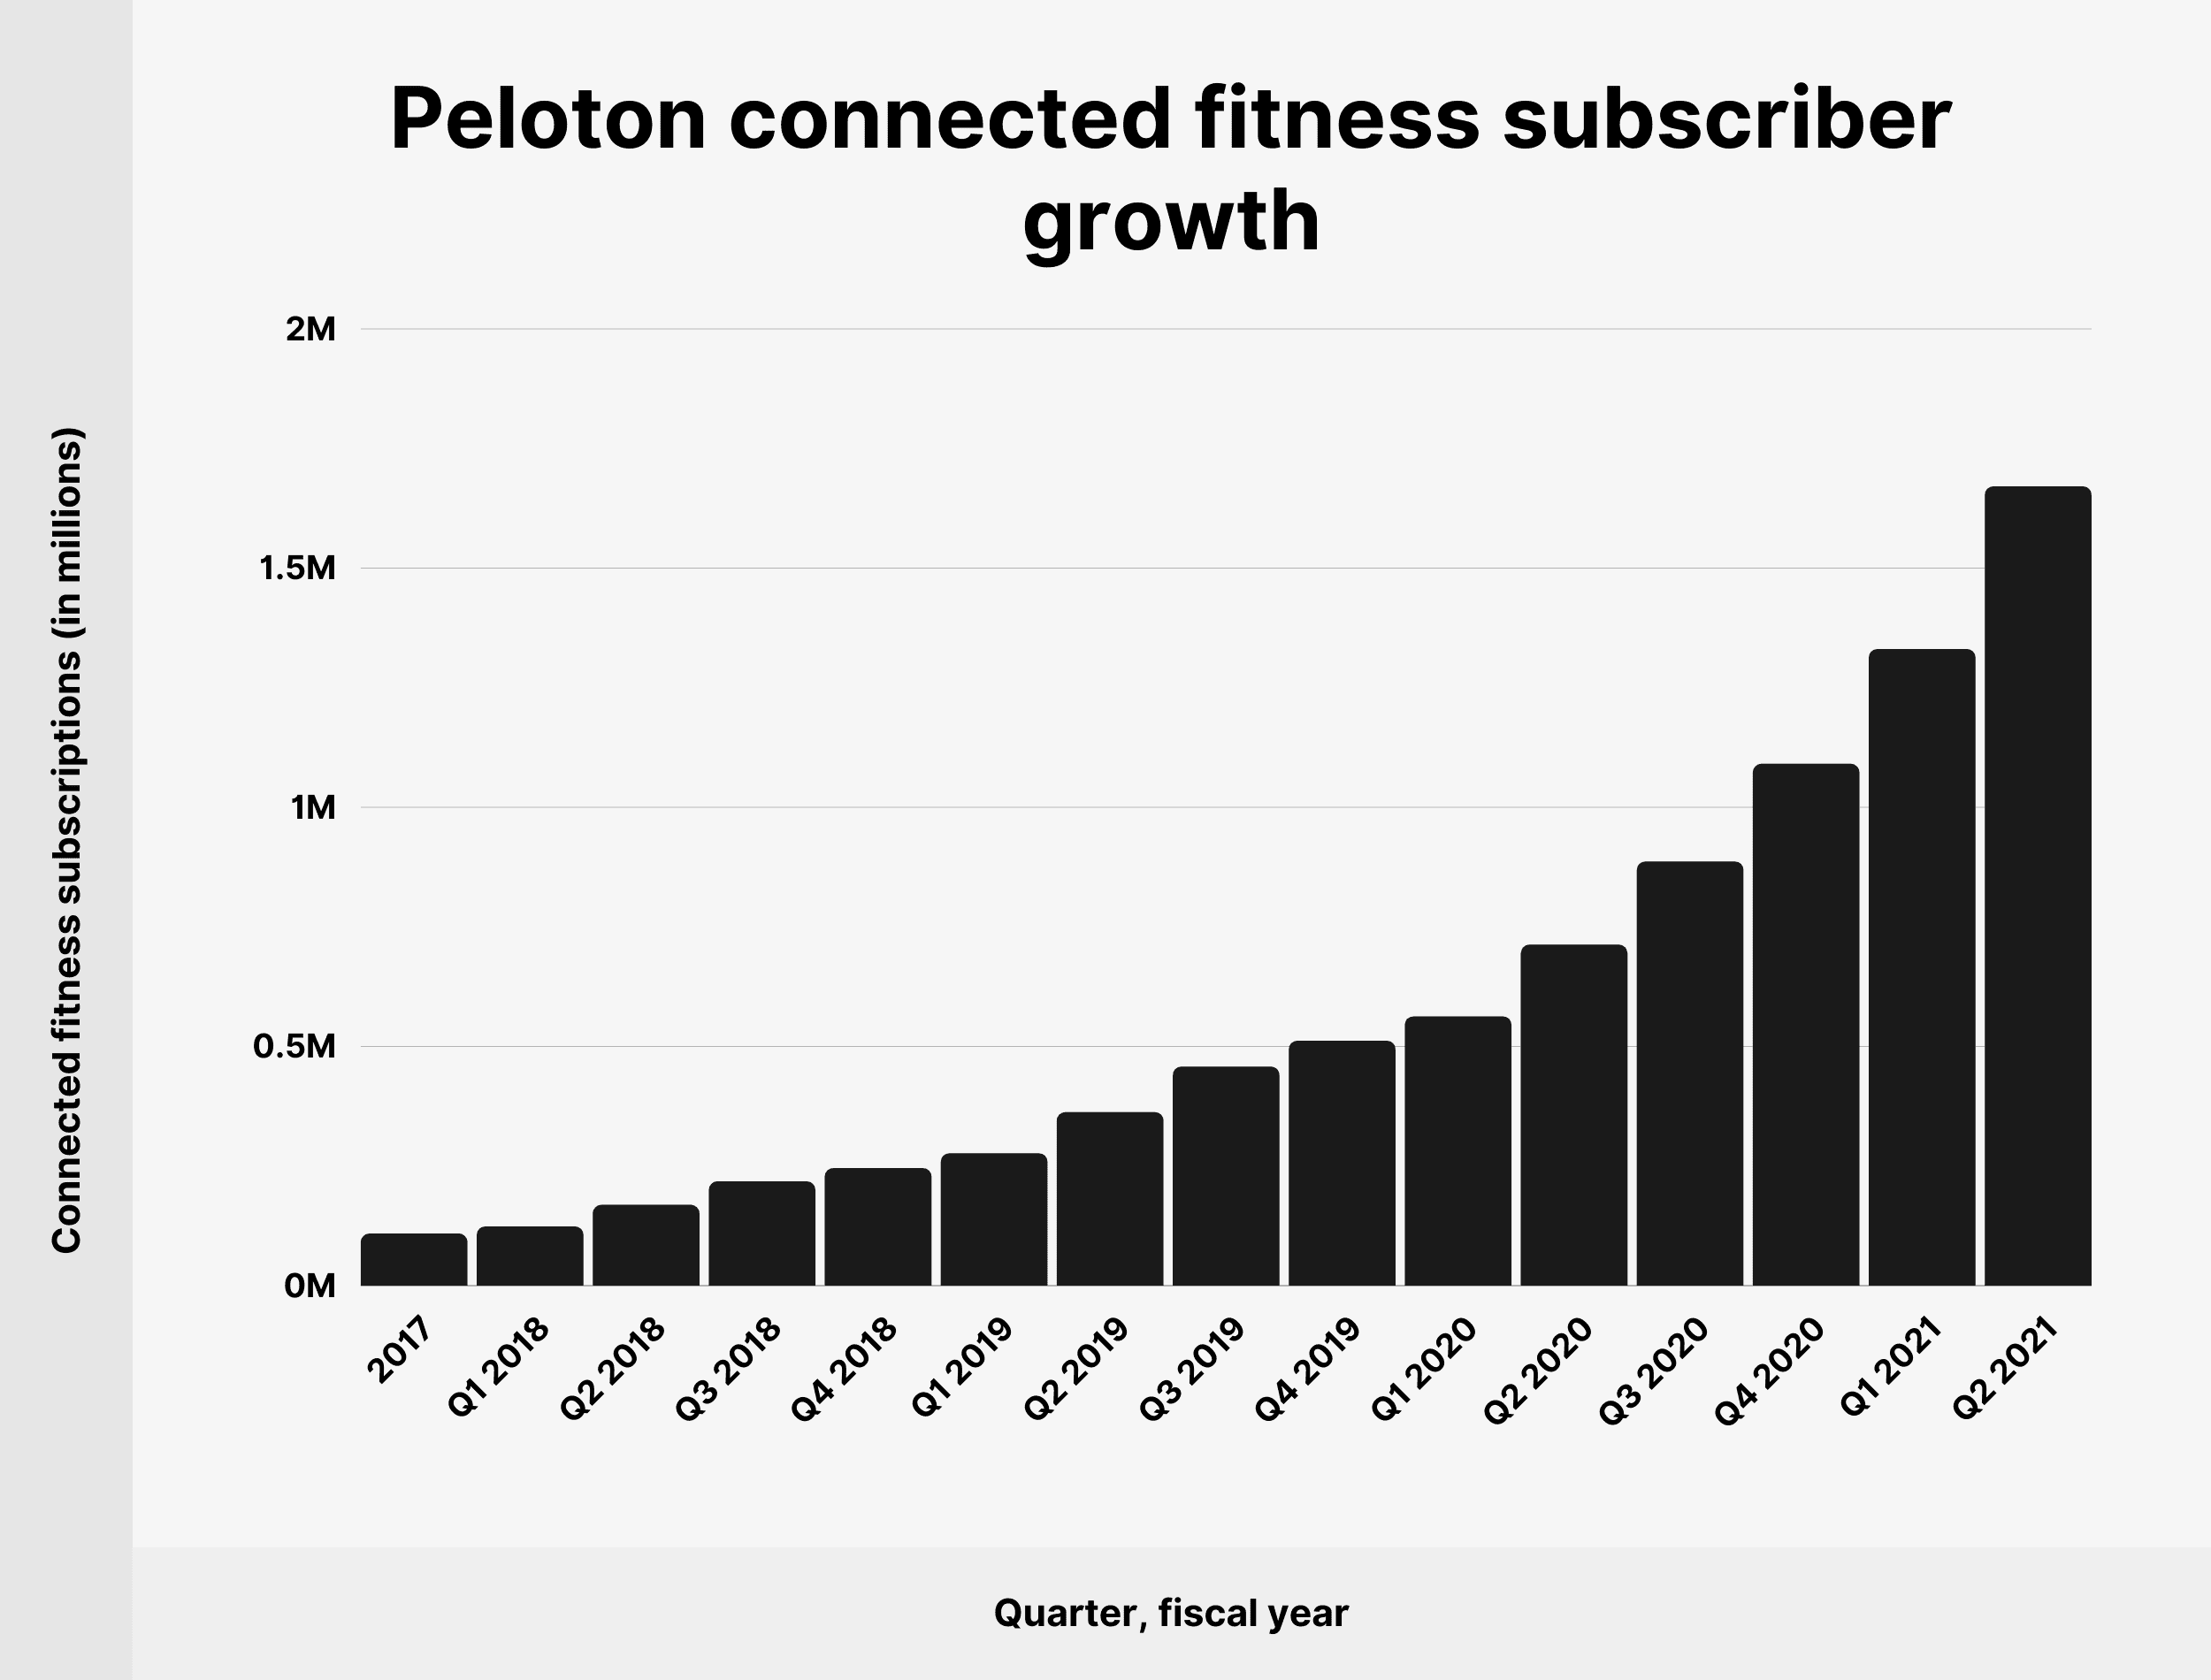 Peloton connected fitness subscriber growth